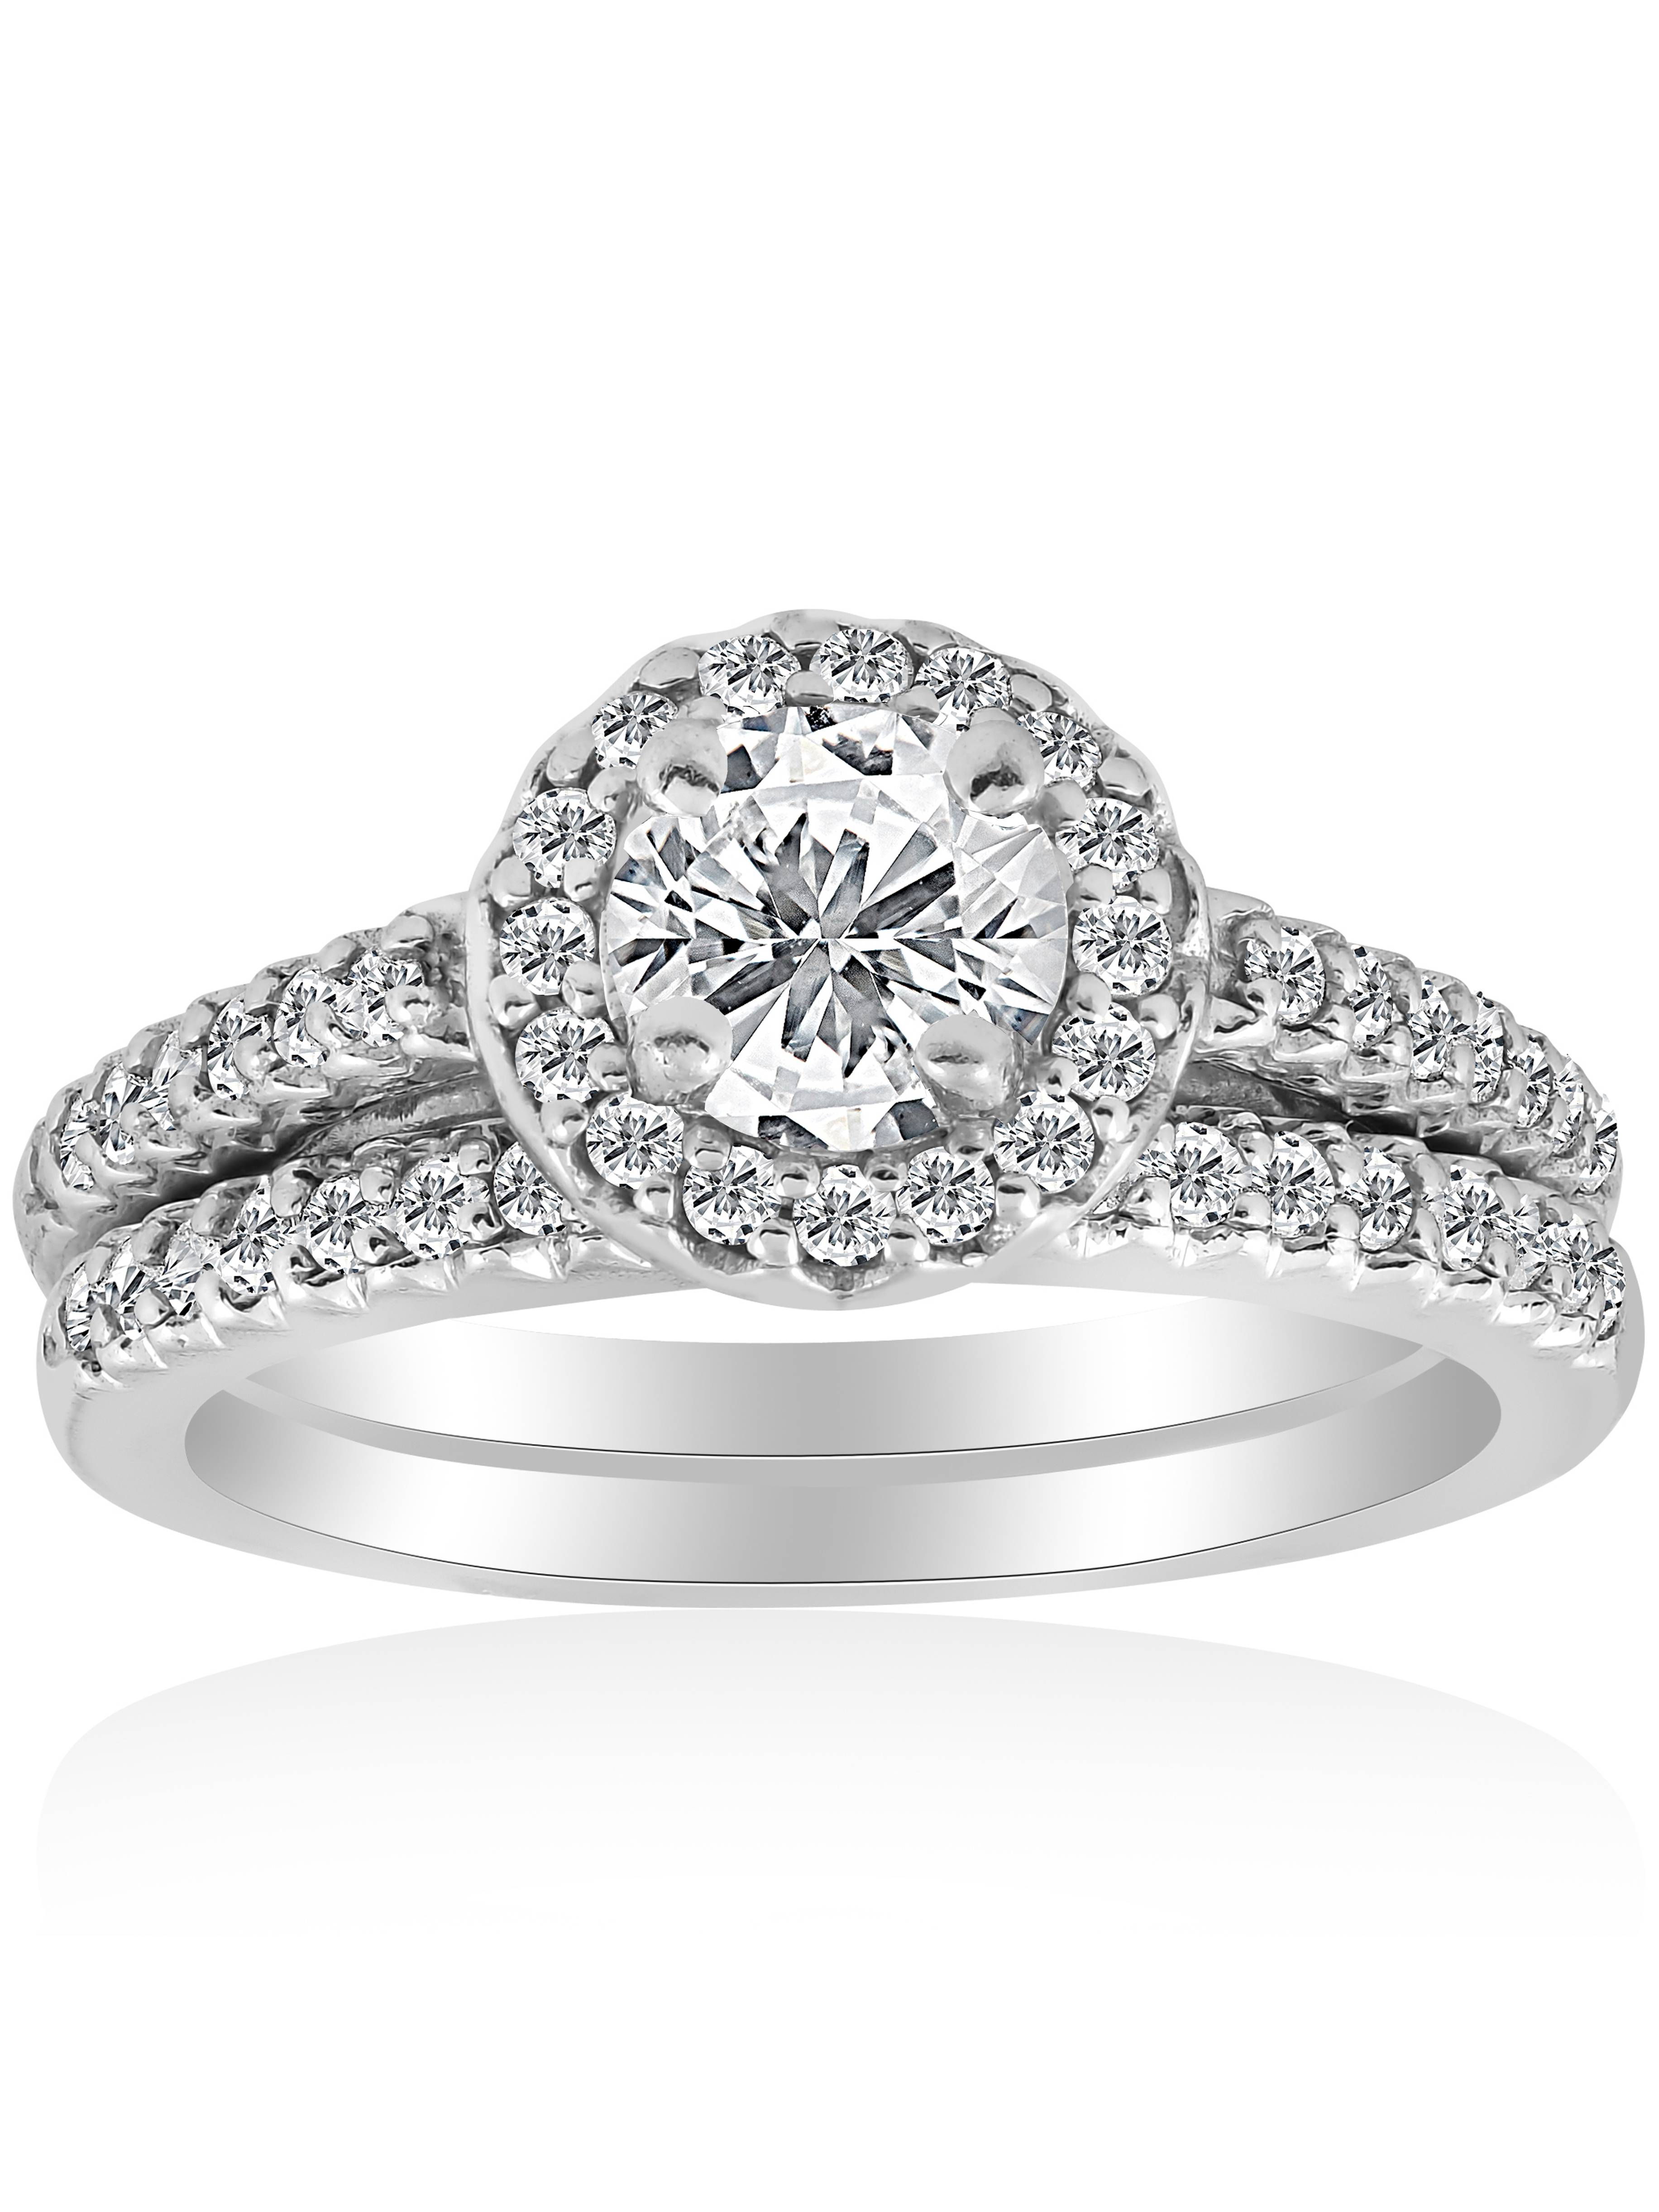 1ct Halo Diamond Engagement Ring Matching Wedding Band White Gold Solitaire